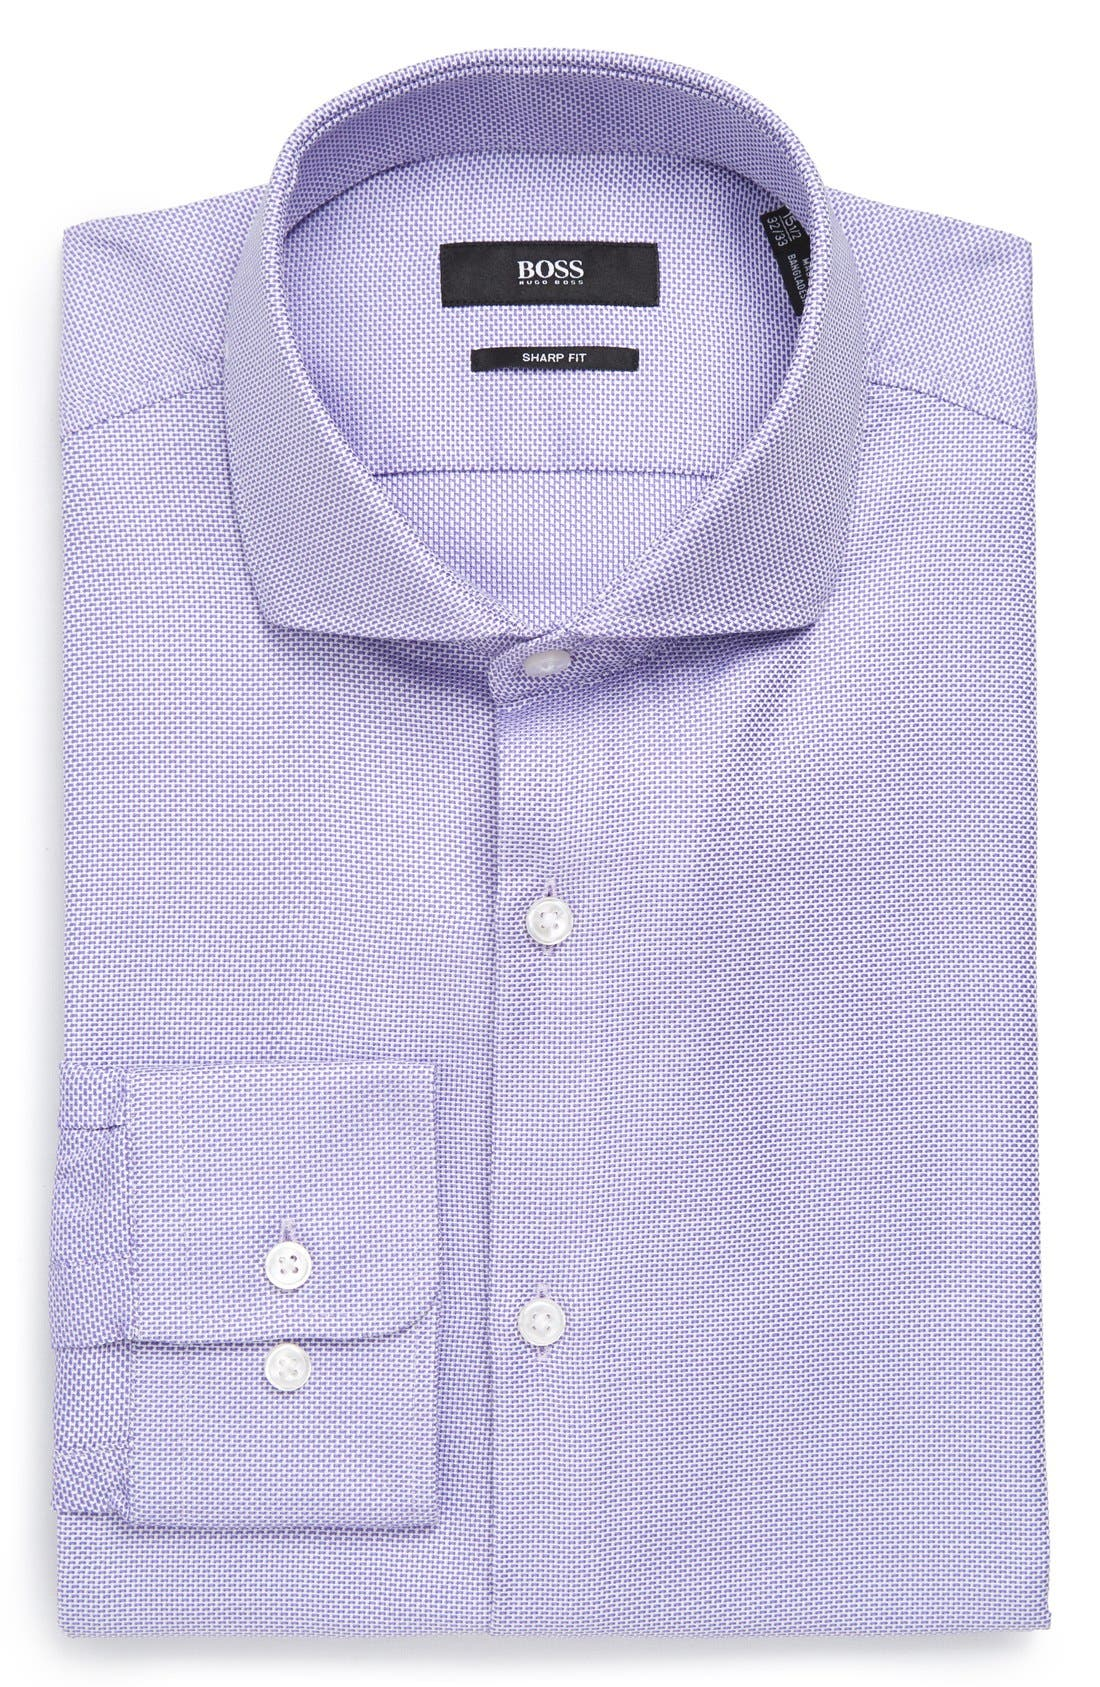 Mens dress shirts images